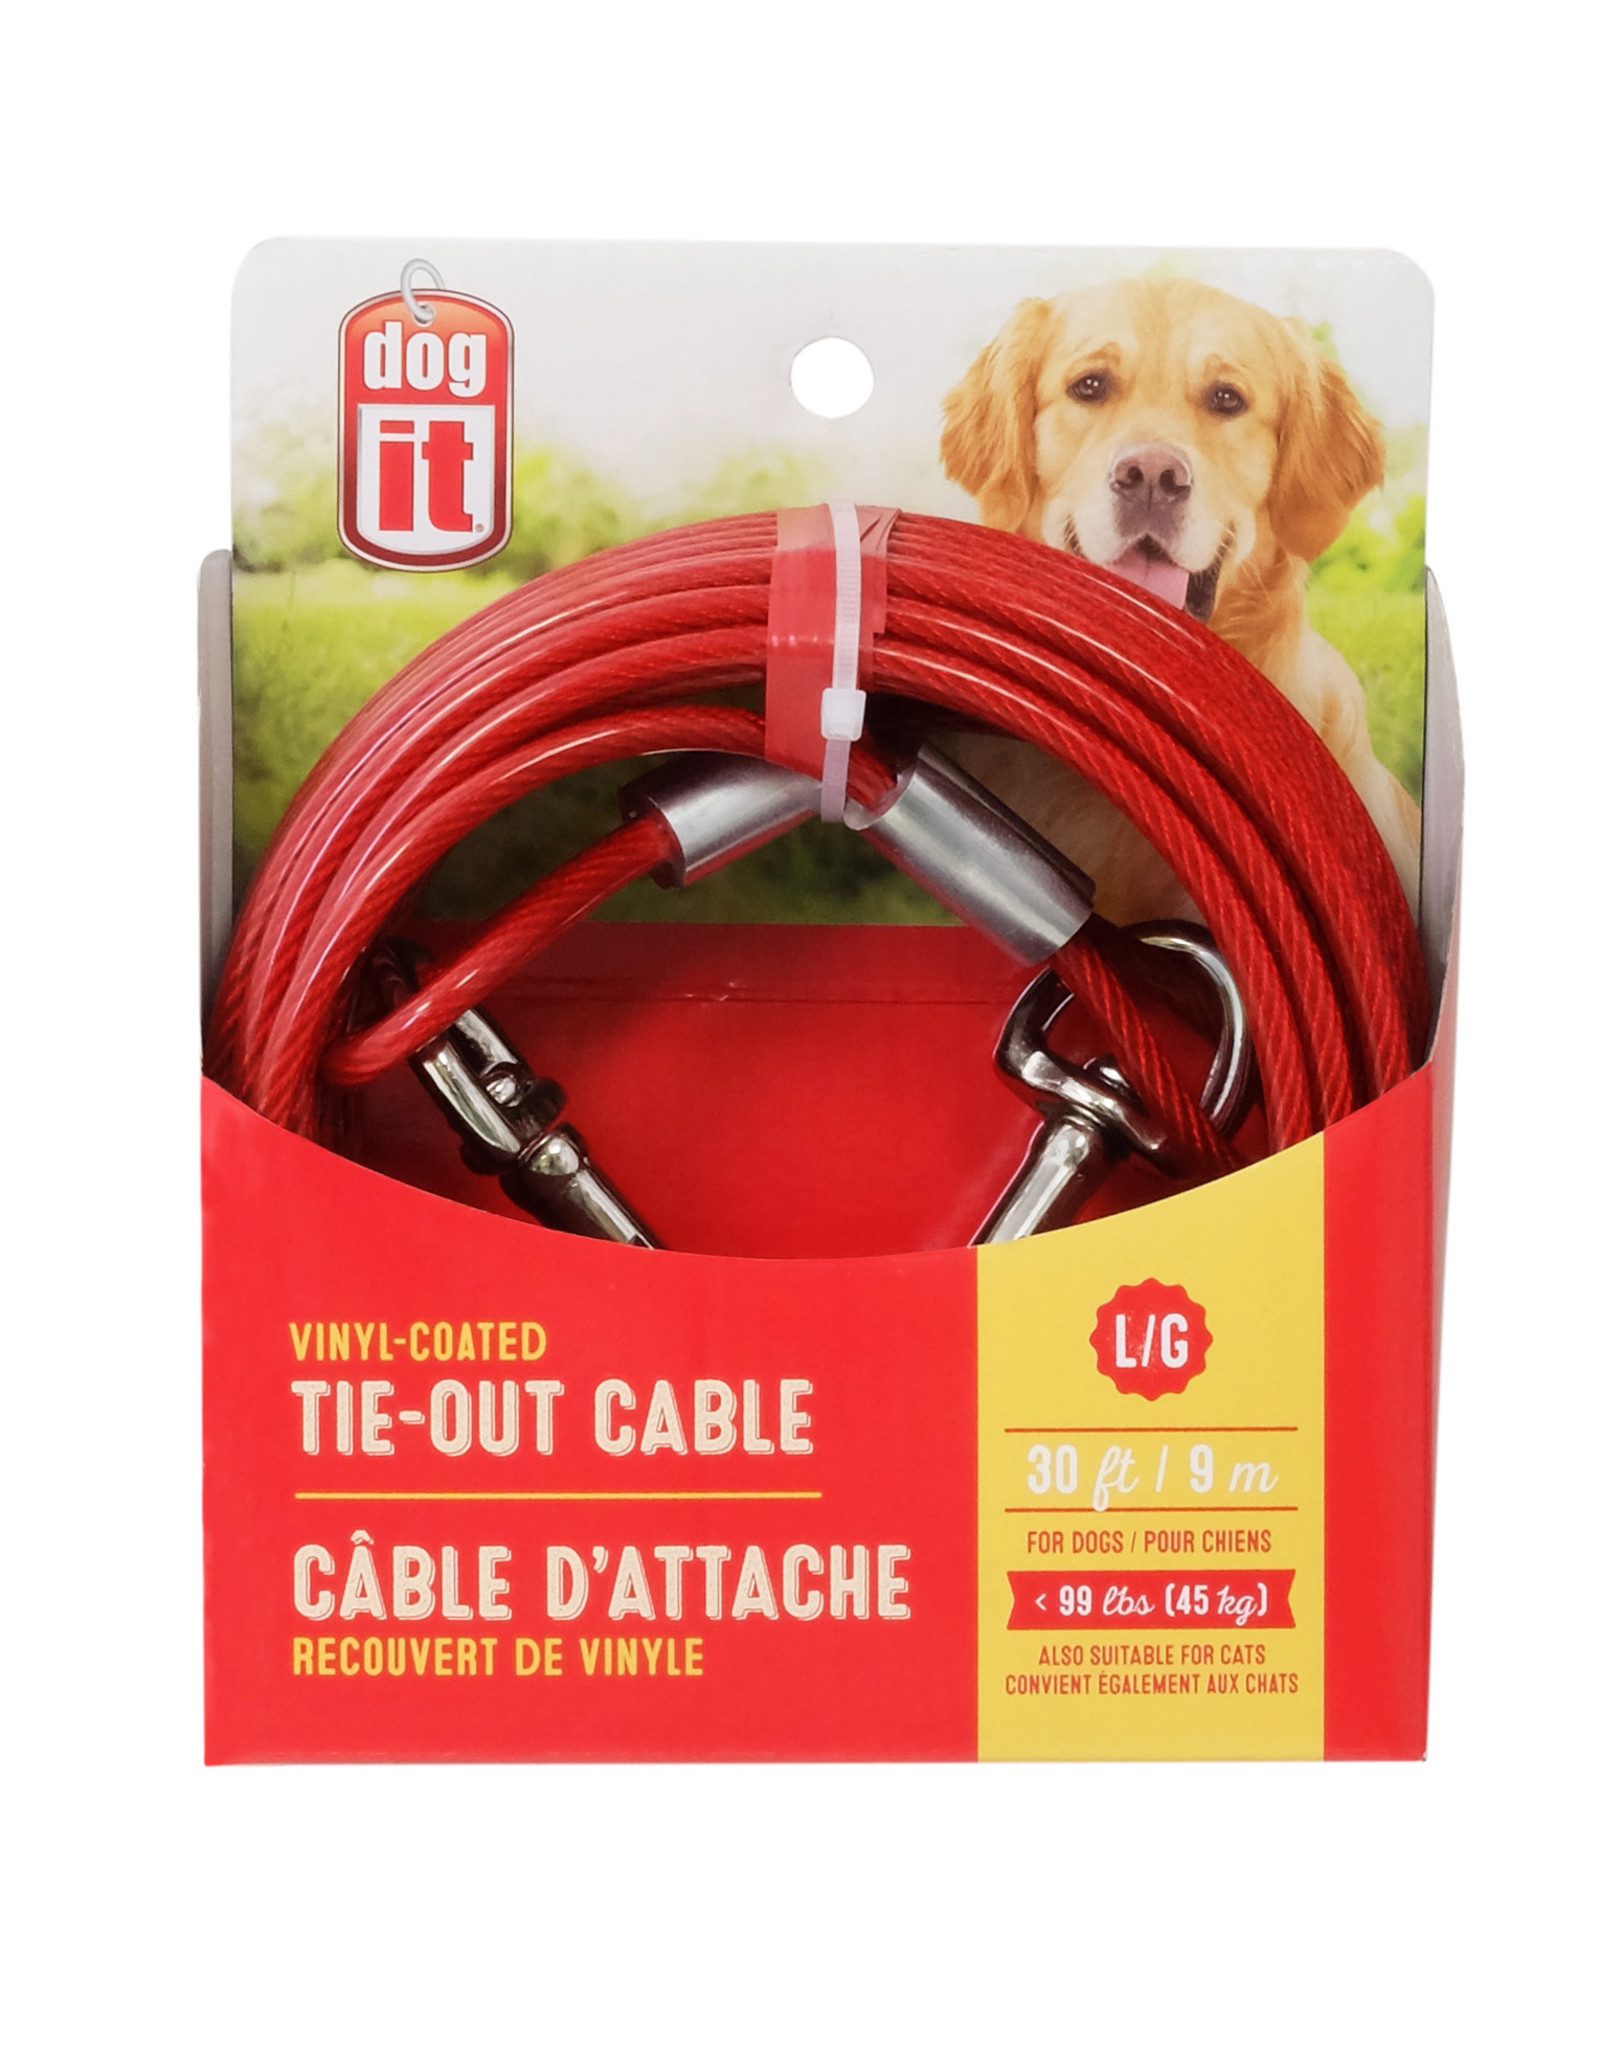 DogIt DogTether Tie-out Cable Red Large 9m (30')